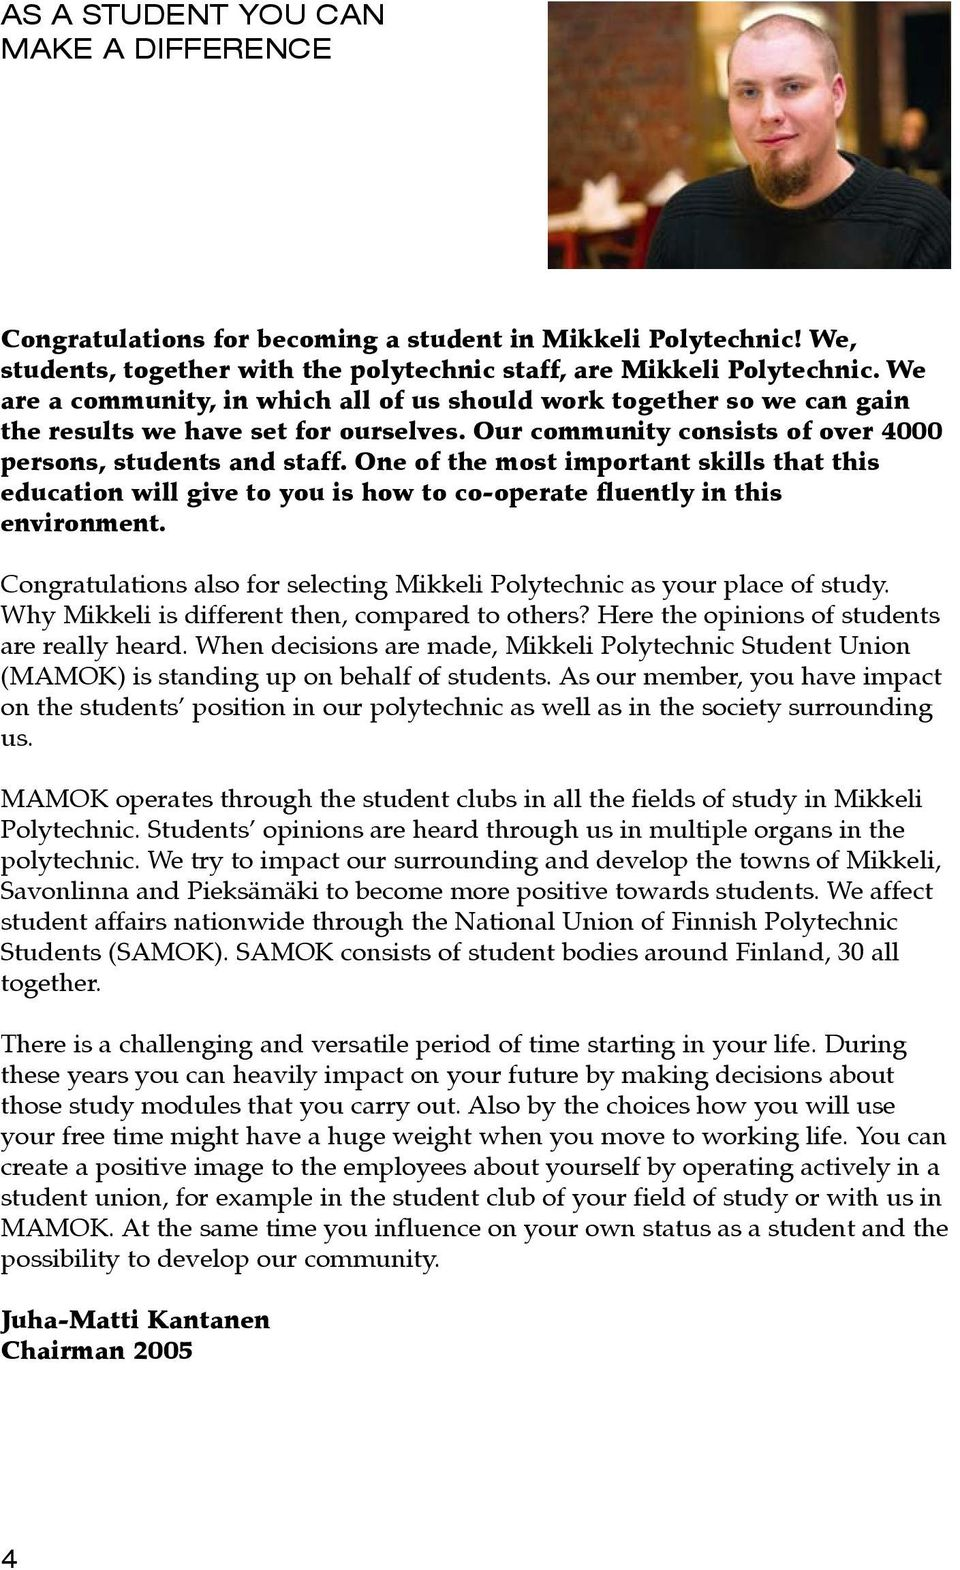 One of the most important skills that this education will give to you is how to co-operate fluently in this environment. Congratulations also for selecting Mikkeli Polytechnic as your place of study.